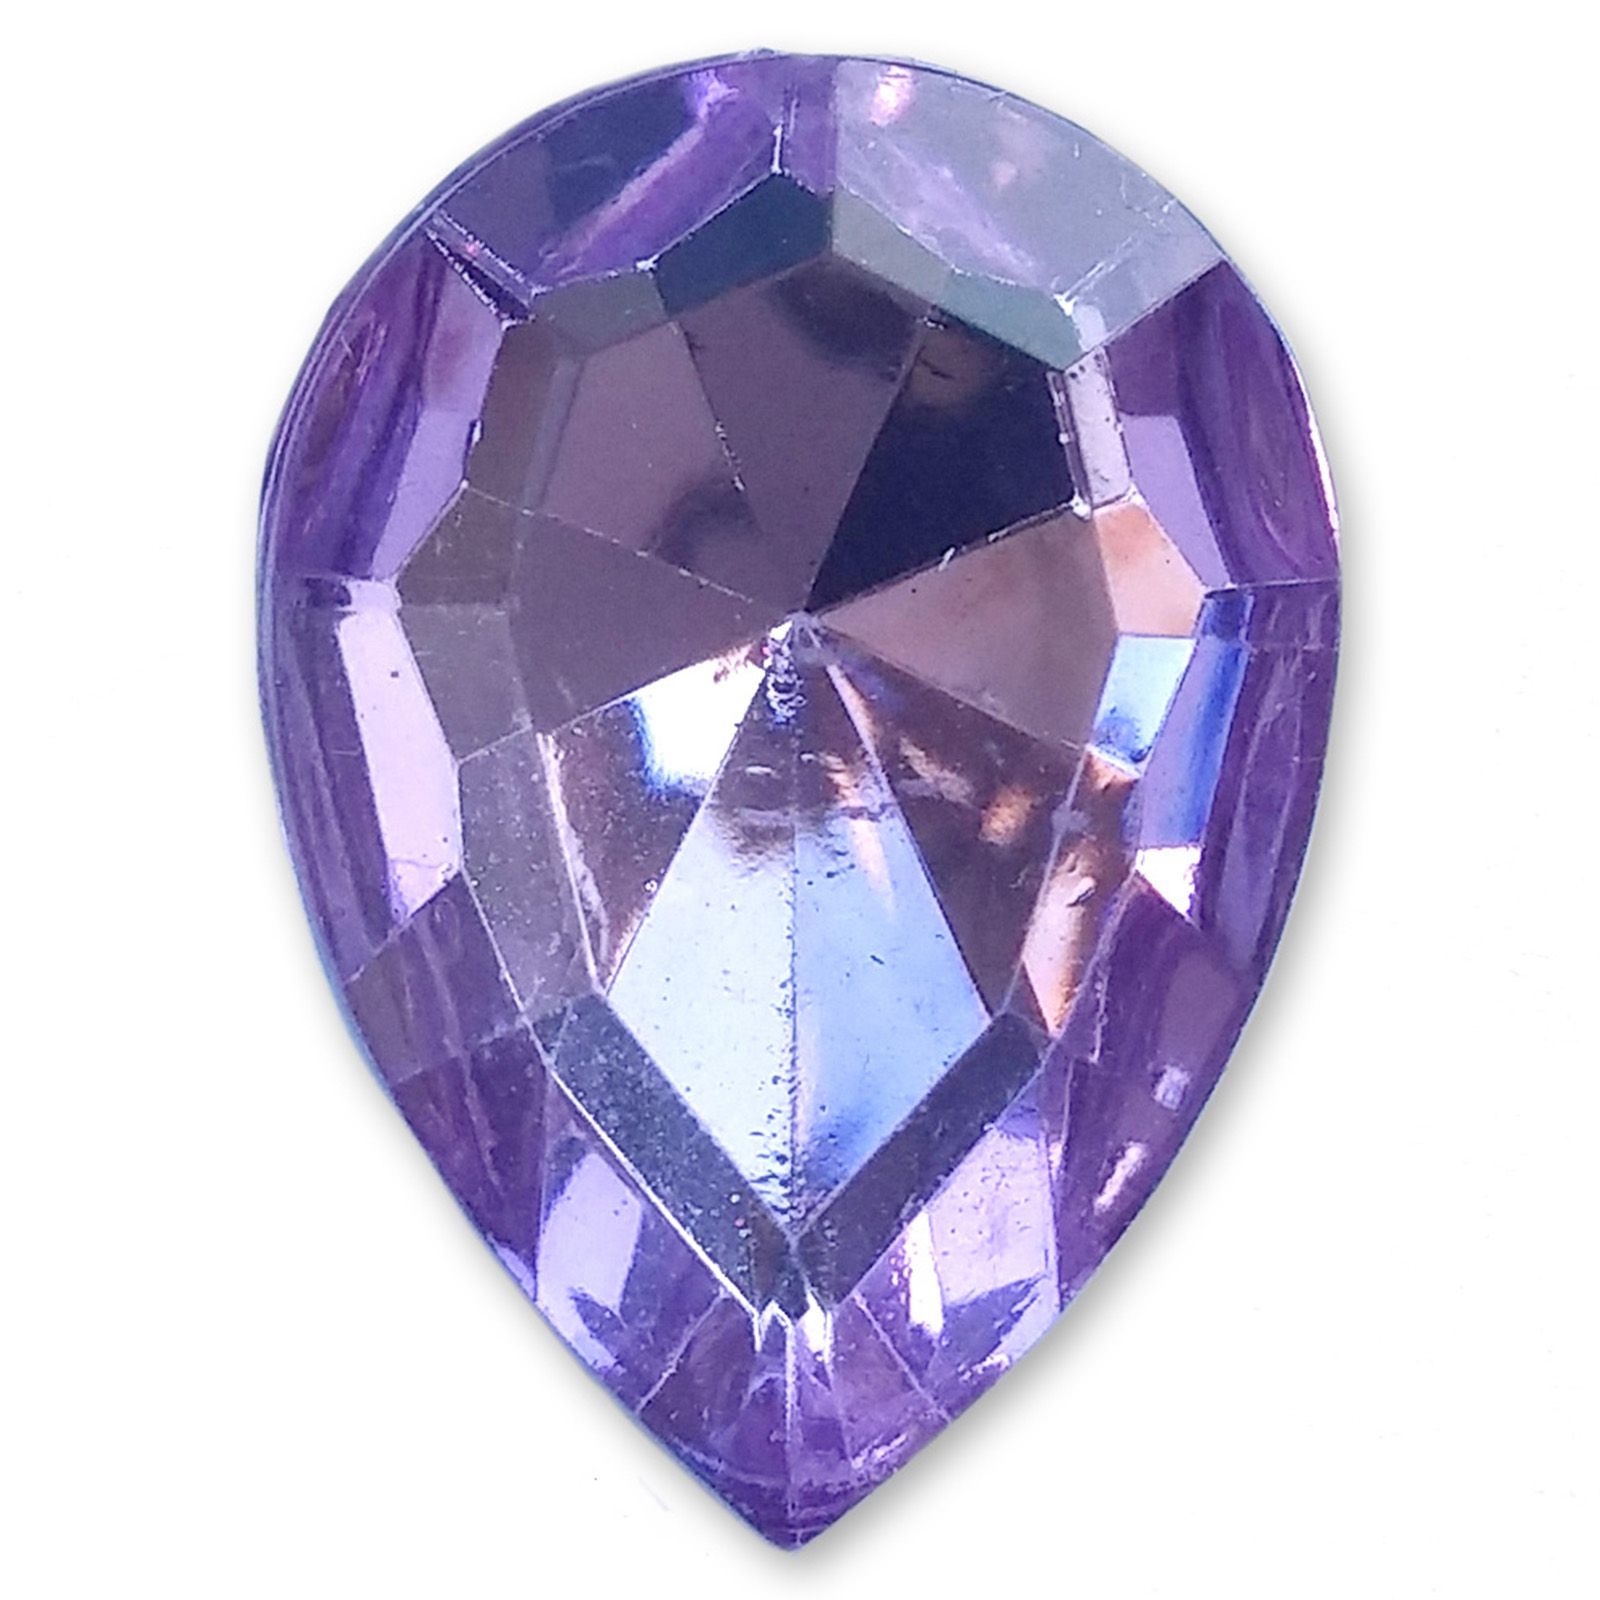 gems sugar violet gemstone rock vegan products